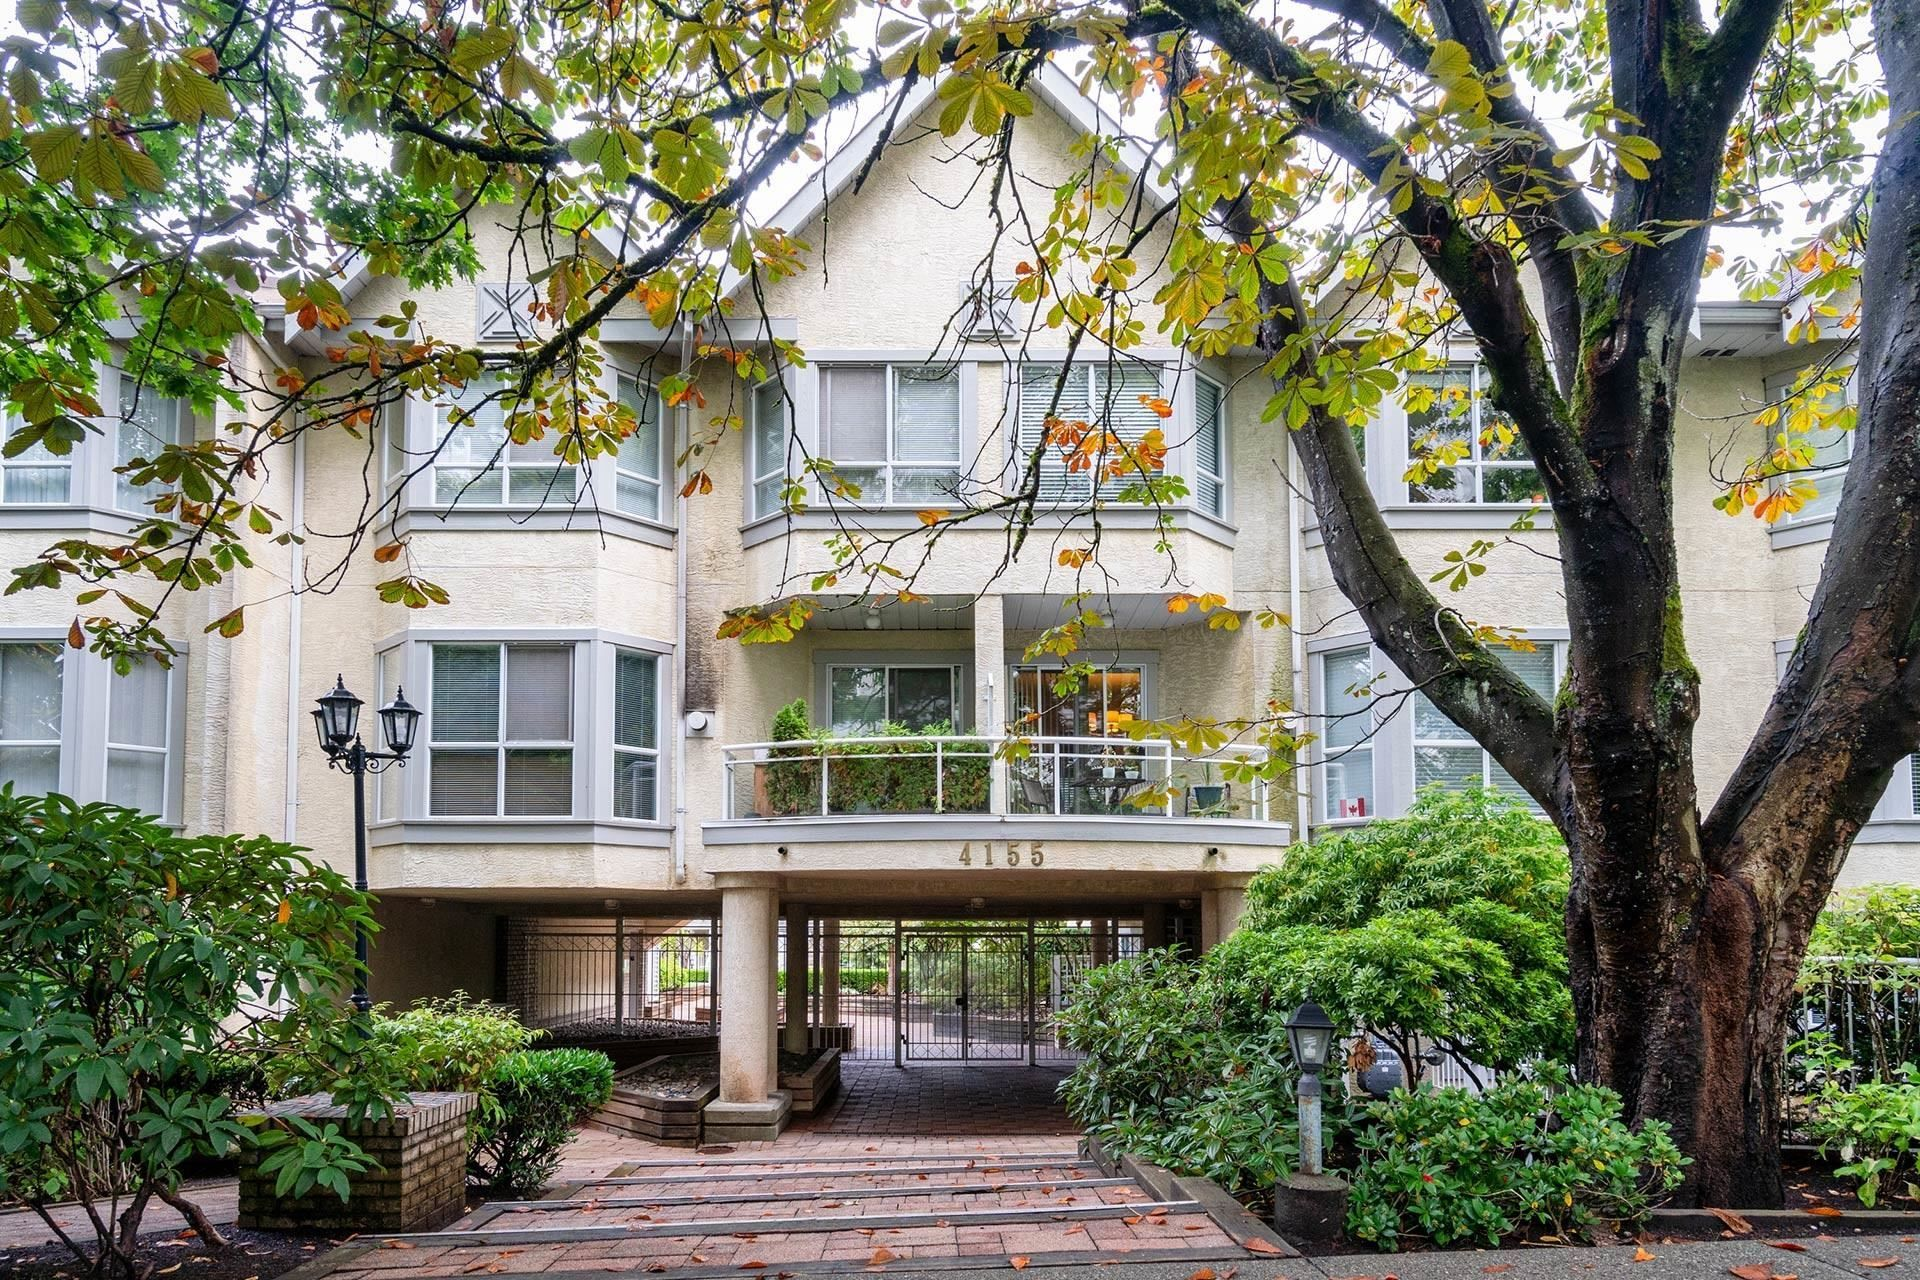 Main Photo: 237 4155 SARDIS Street in Burnaby: Central Park BS Townhouse for sale (Burnaby South)  : MLS®# R2621975